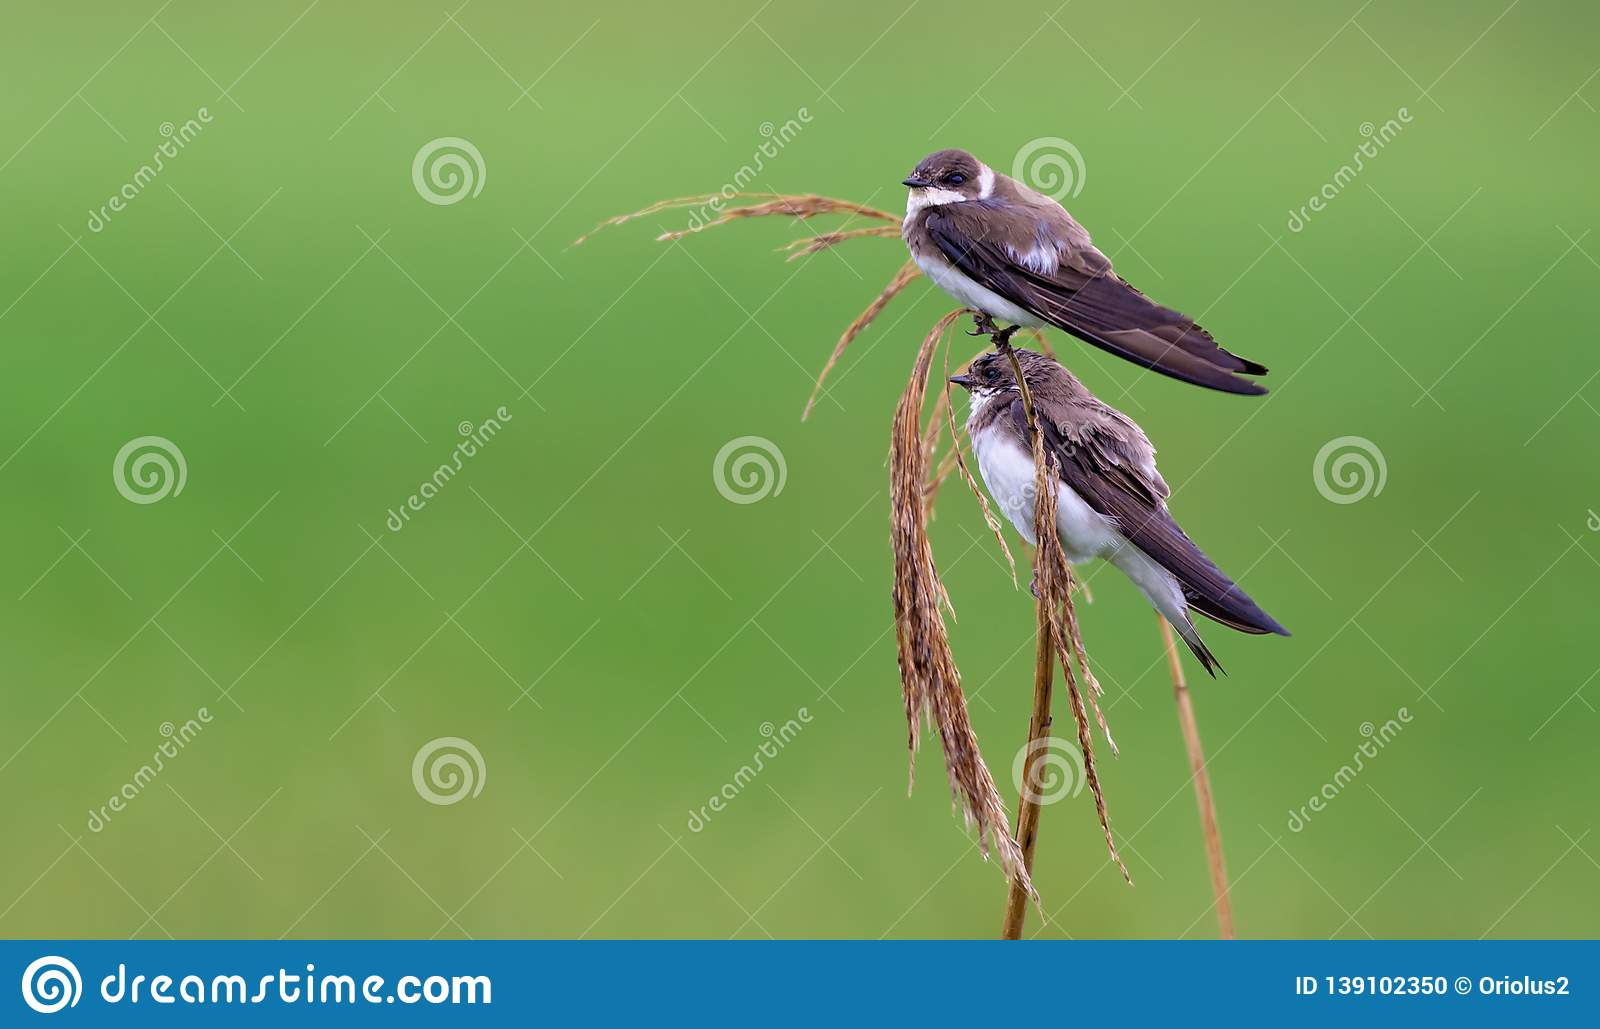 Pair of sand martins sit on a reed mace stems with green background